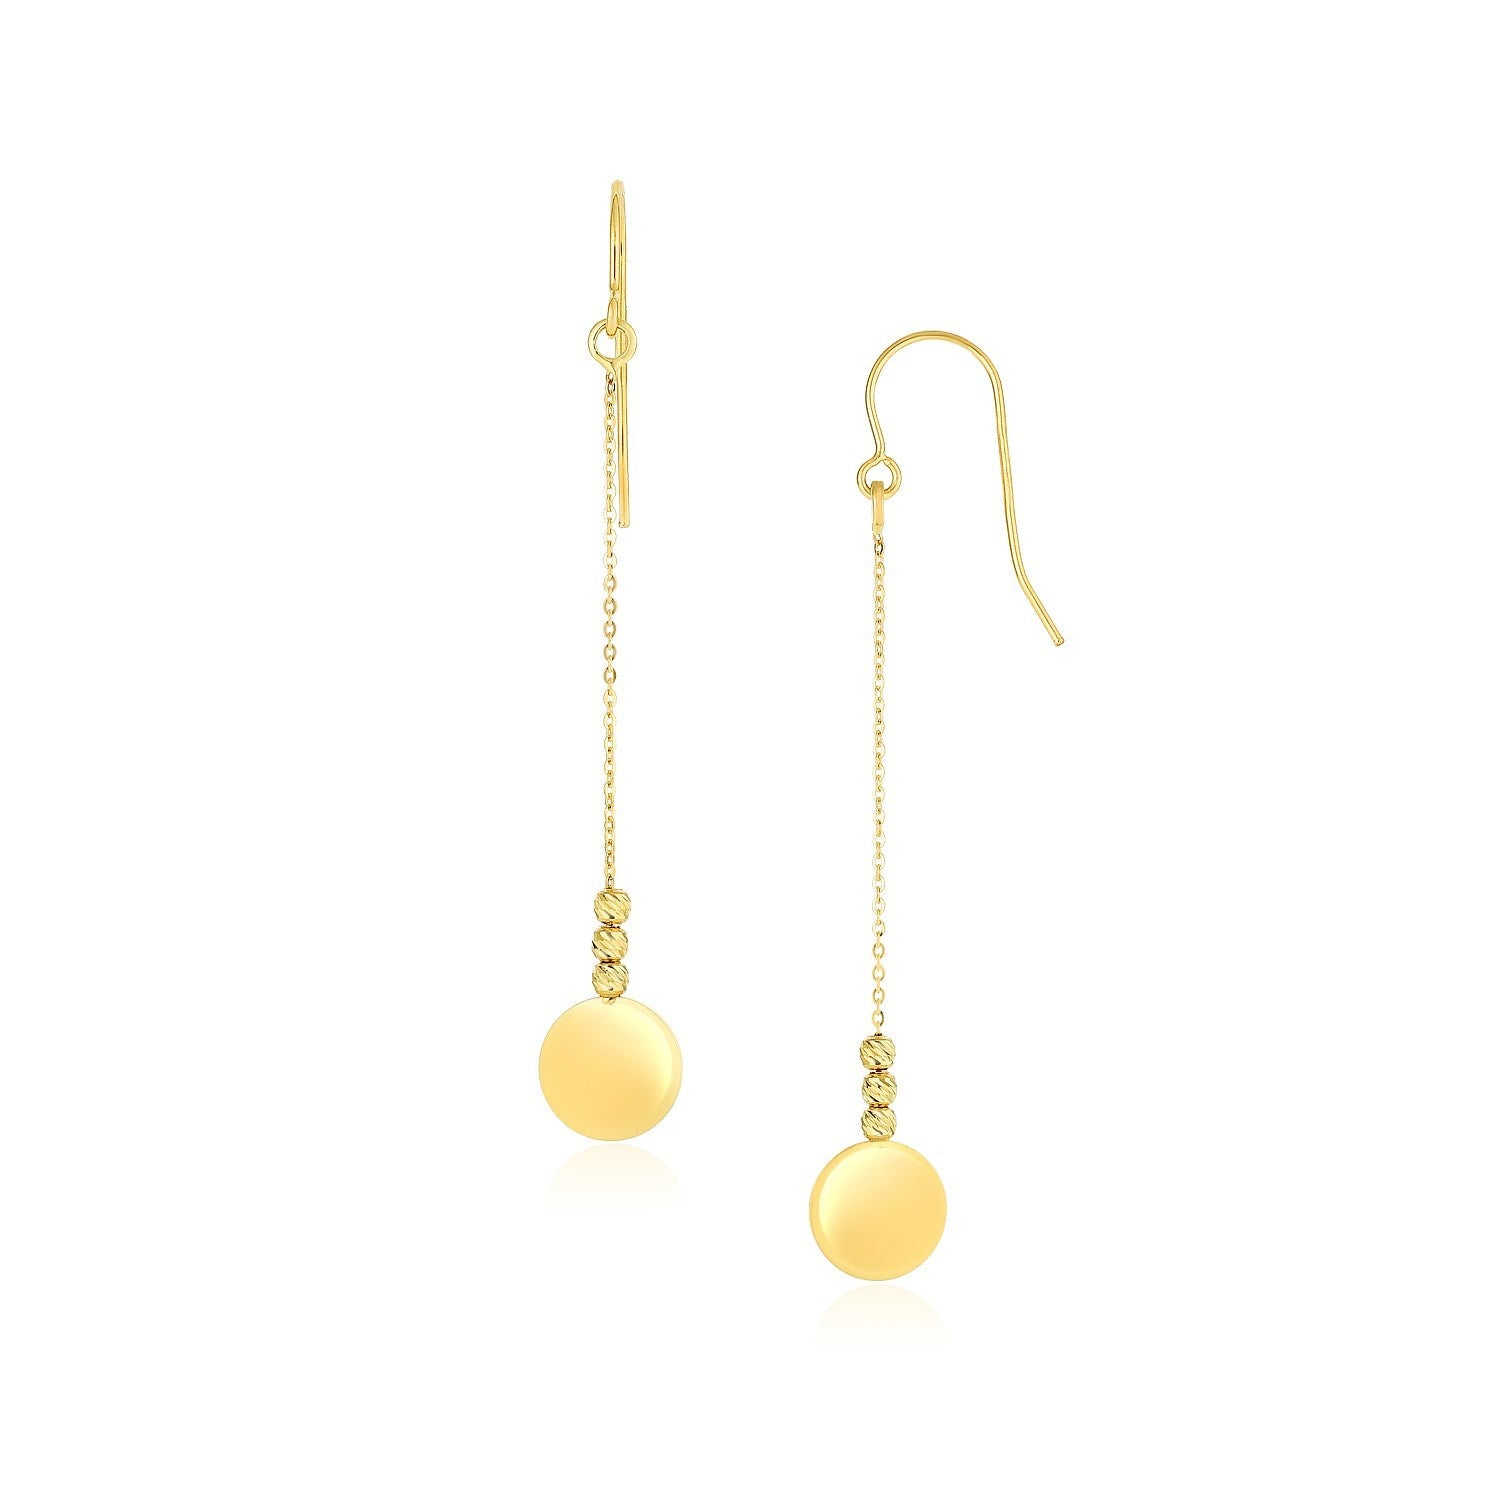 10K Yellow Gold Bead and Shiny Disc Drop Earrings